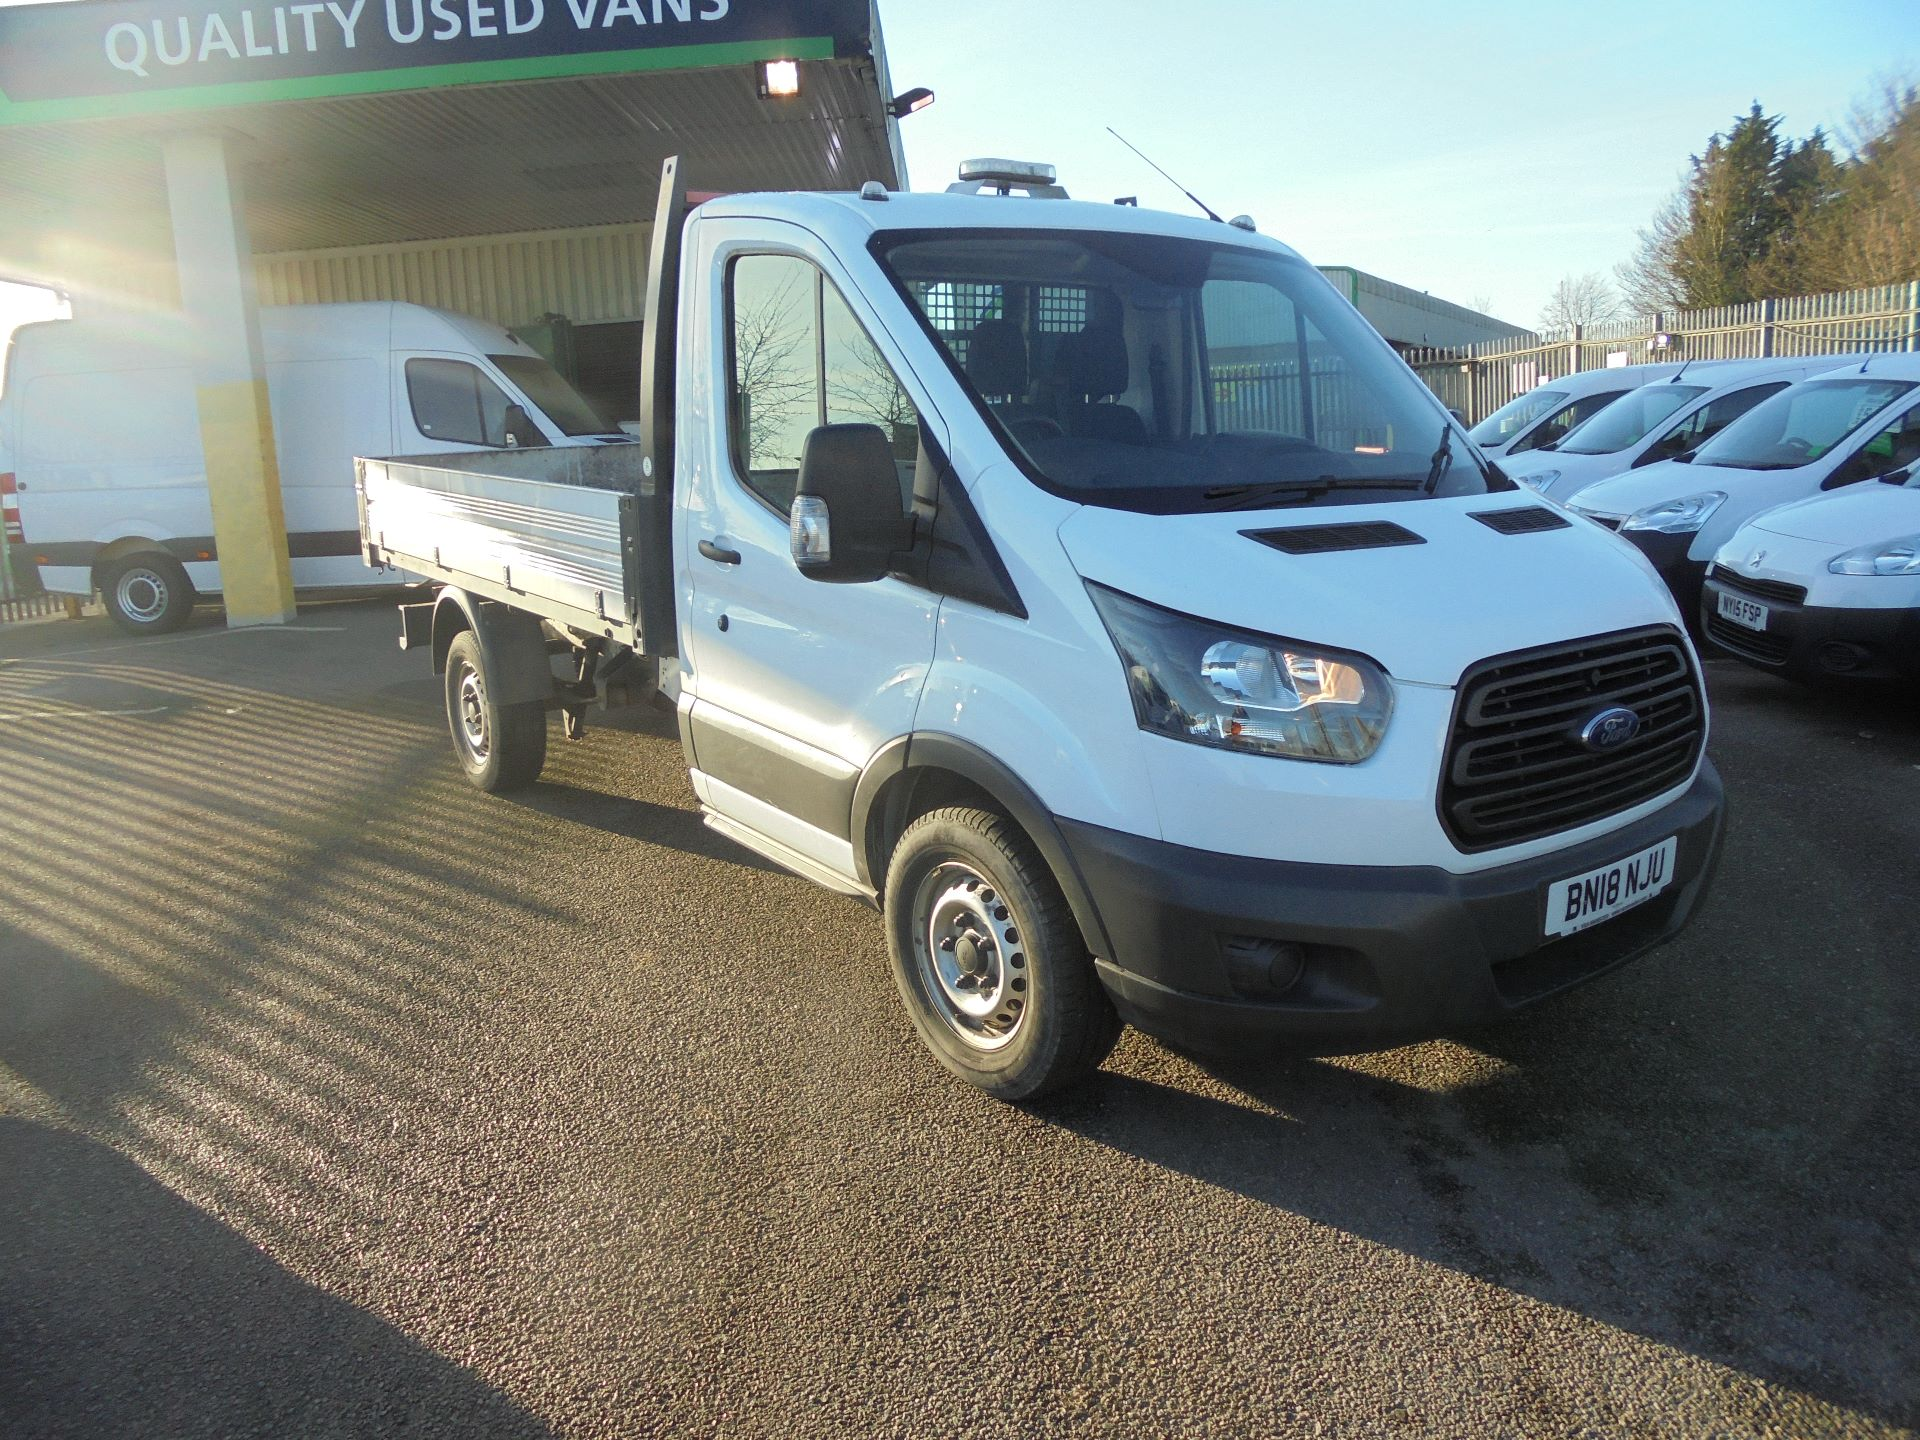 2018 Ford Transit 350 L2 SINGLE CAB TIPPER 130PS EURO 6 (BN18NJU)